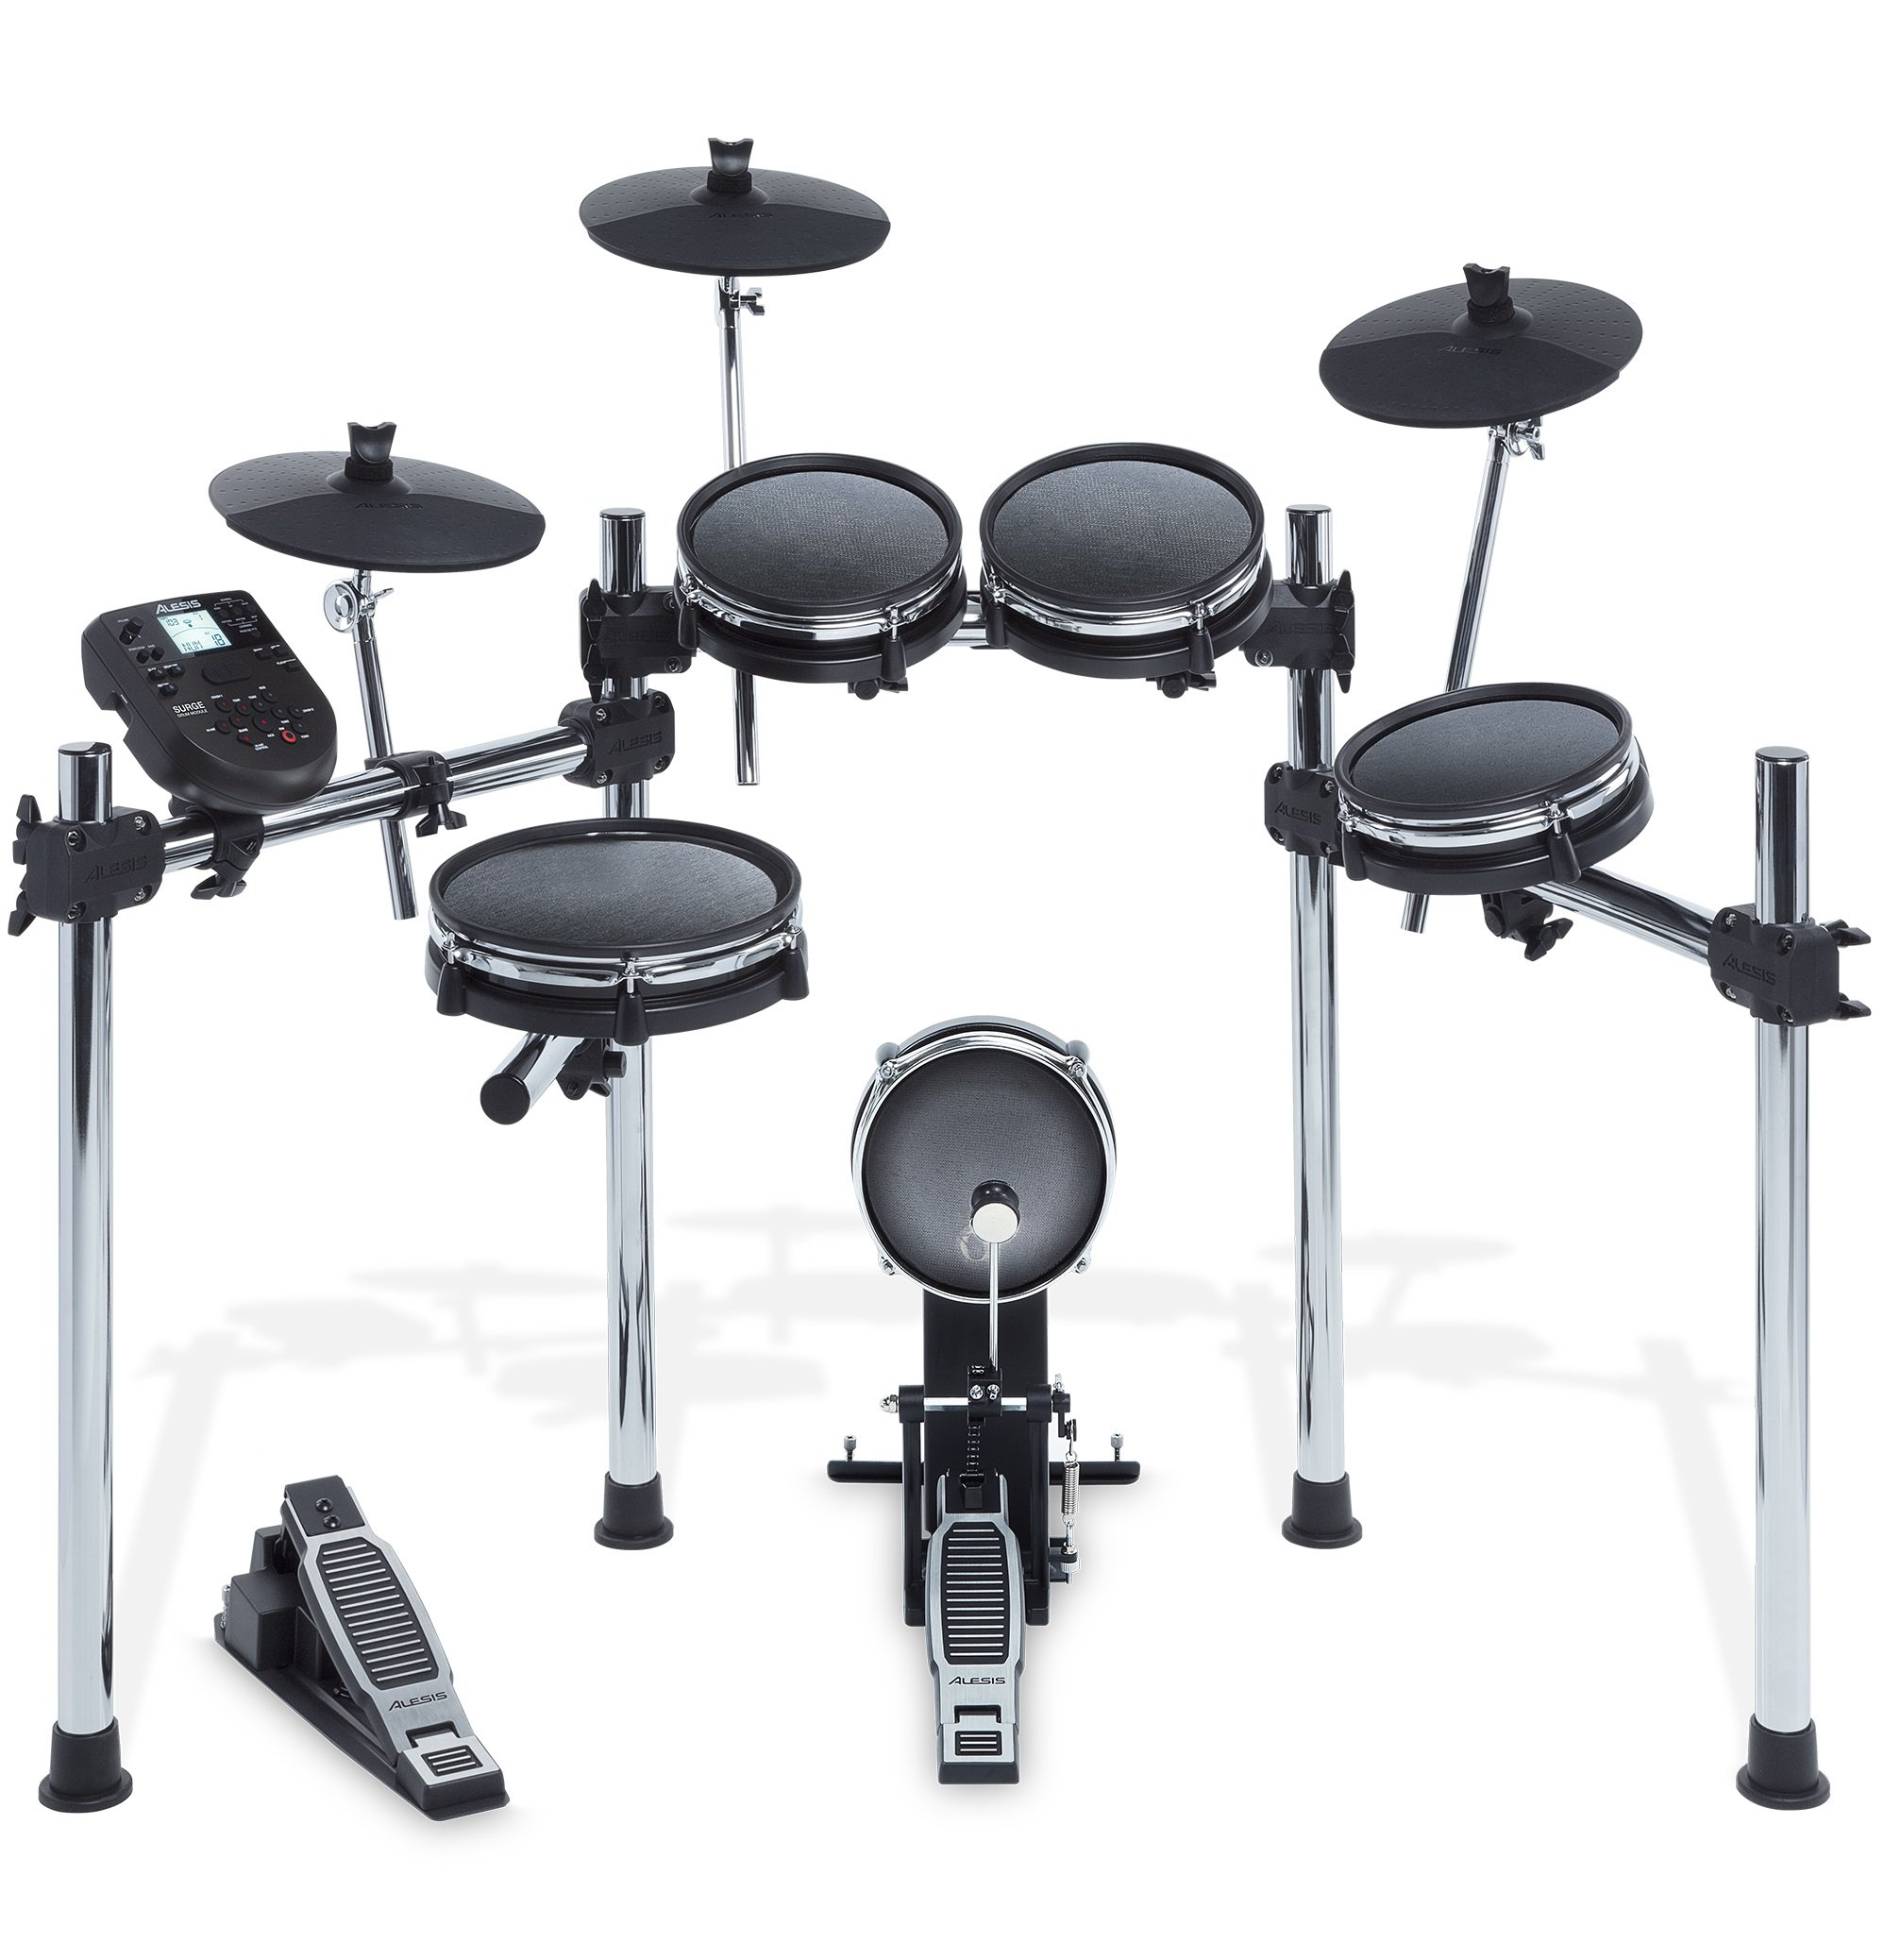 Alesis Surge Mesh Kit | Eight-Piece Electronic Drum Kit with Mesh Heads (10'' Snare, 8'' Toms, 8'' Kick, 10'' Cymbals)